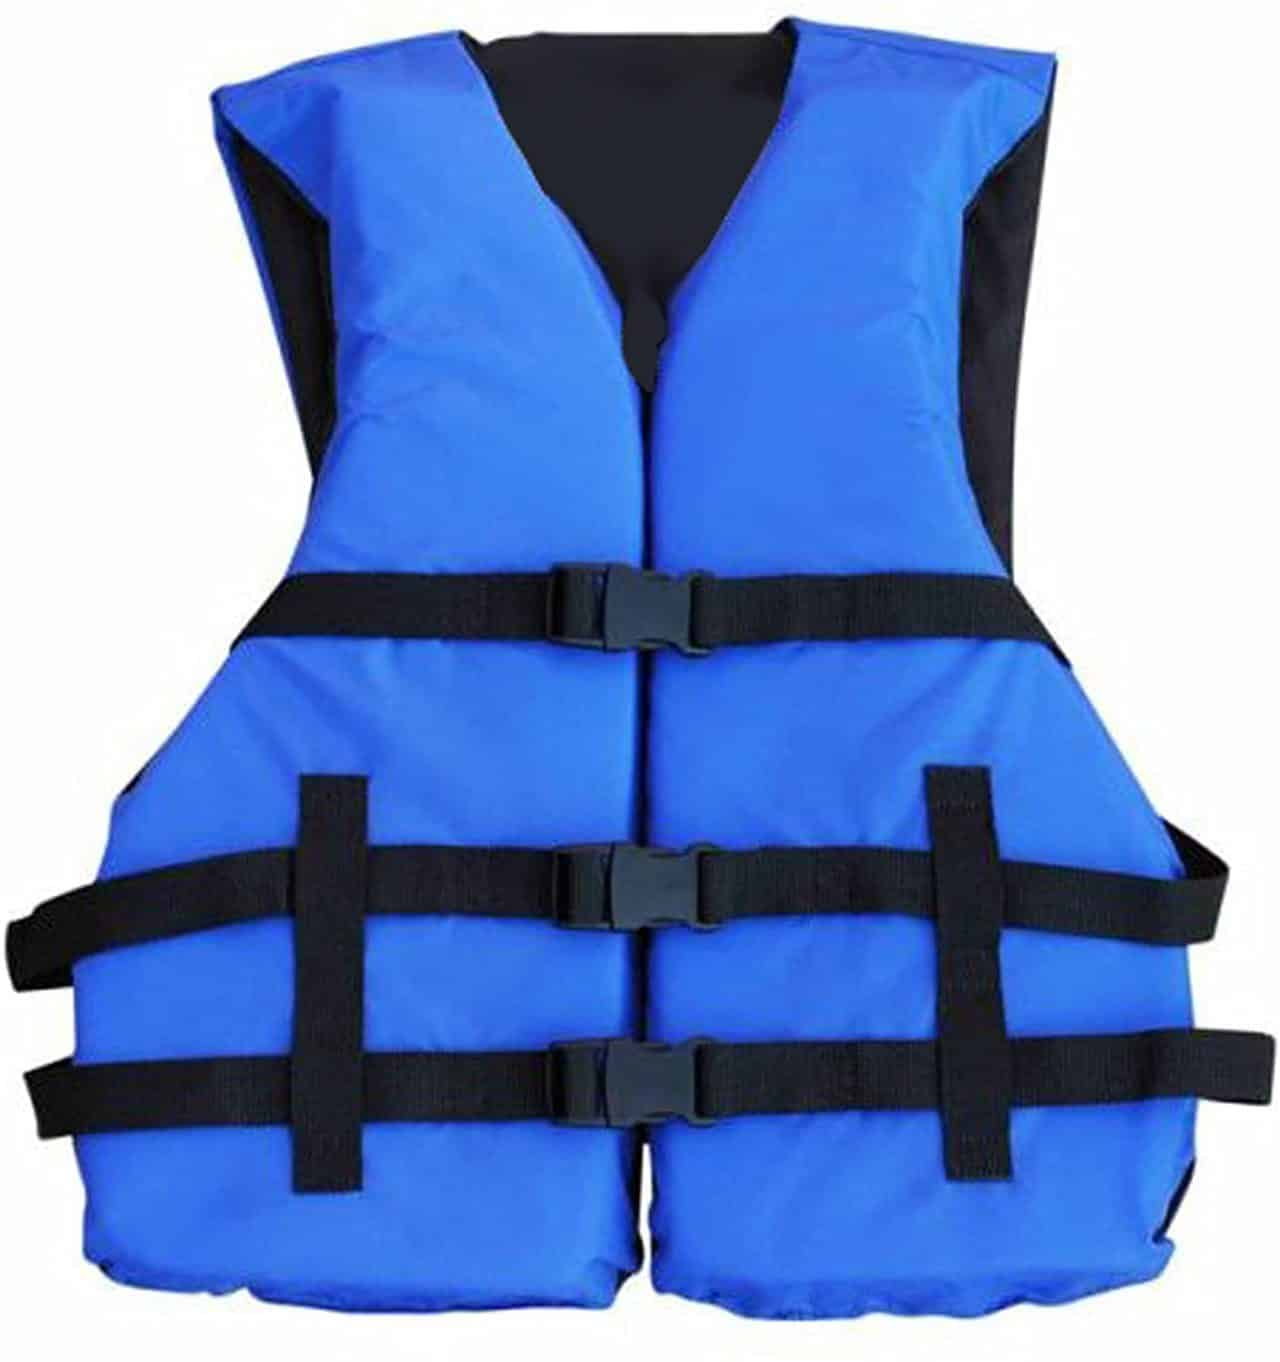 Personal Flotation Device or Life Jacket by Hardcore Water Sports